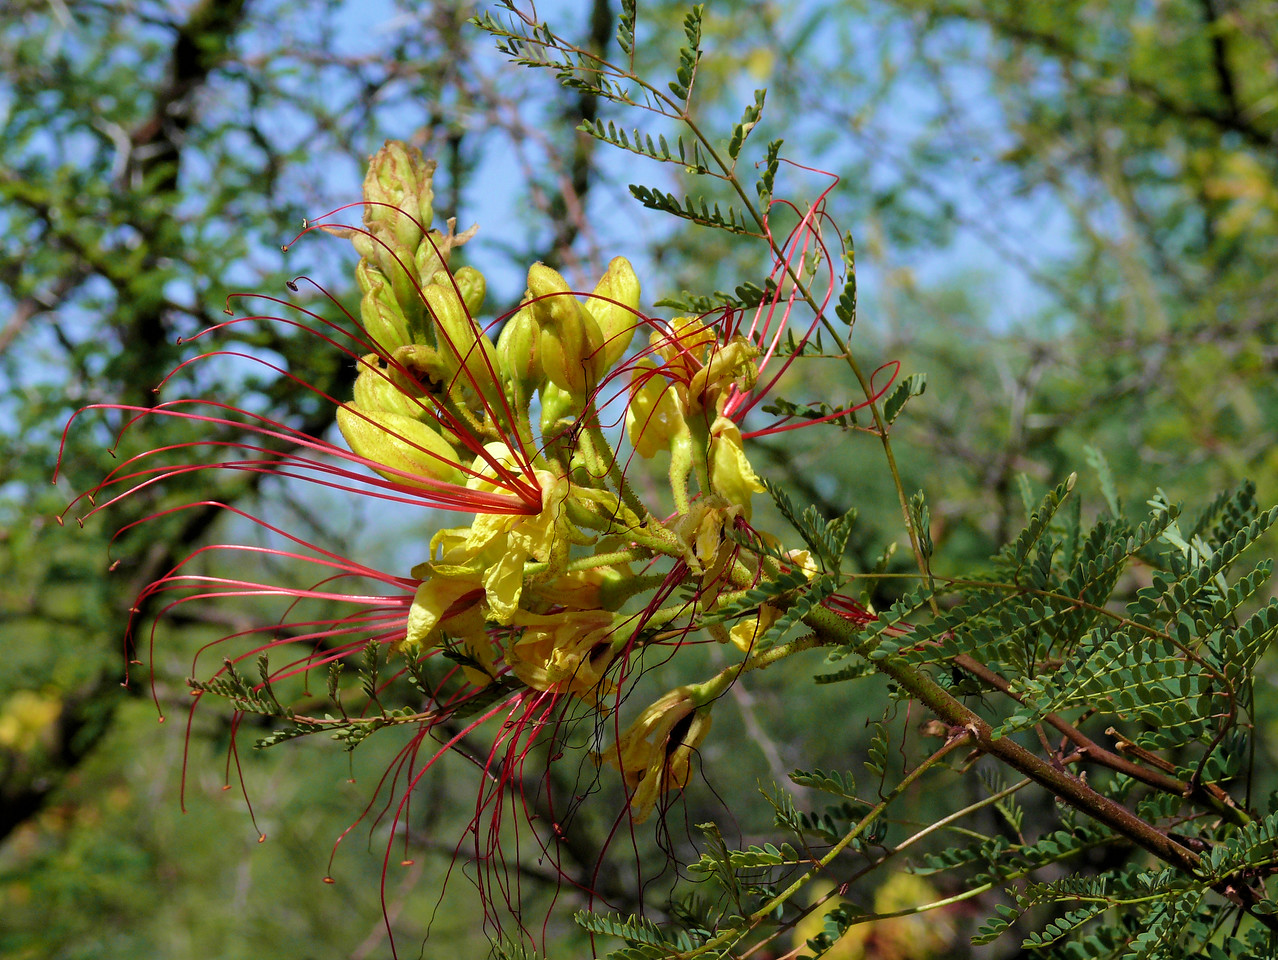 Yellow Flowers with Red Stringy Thingies